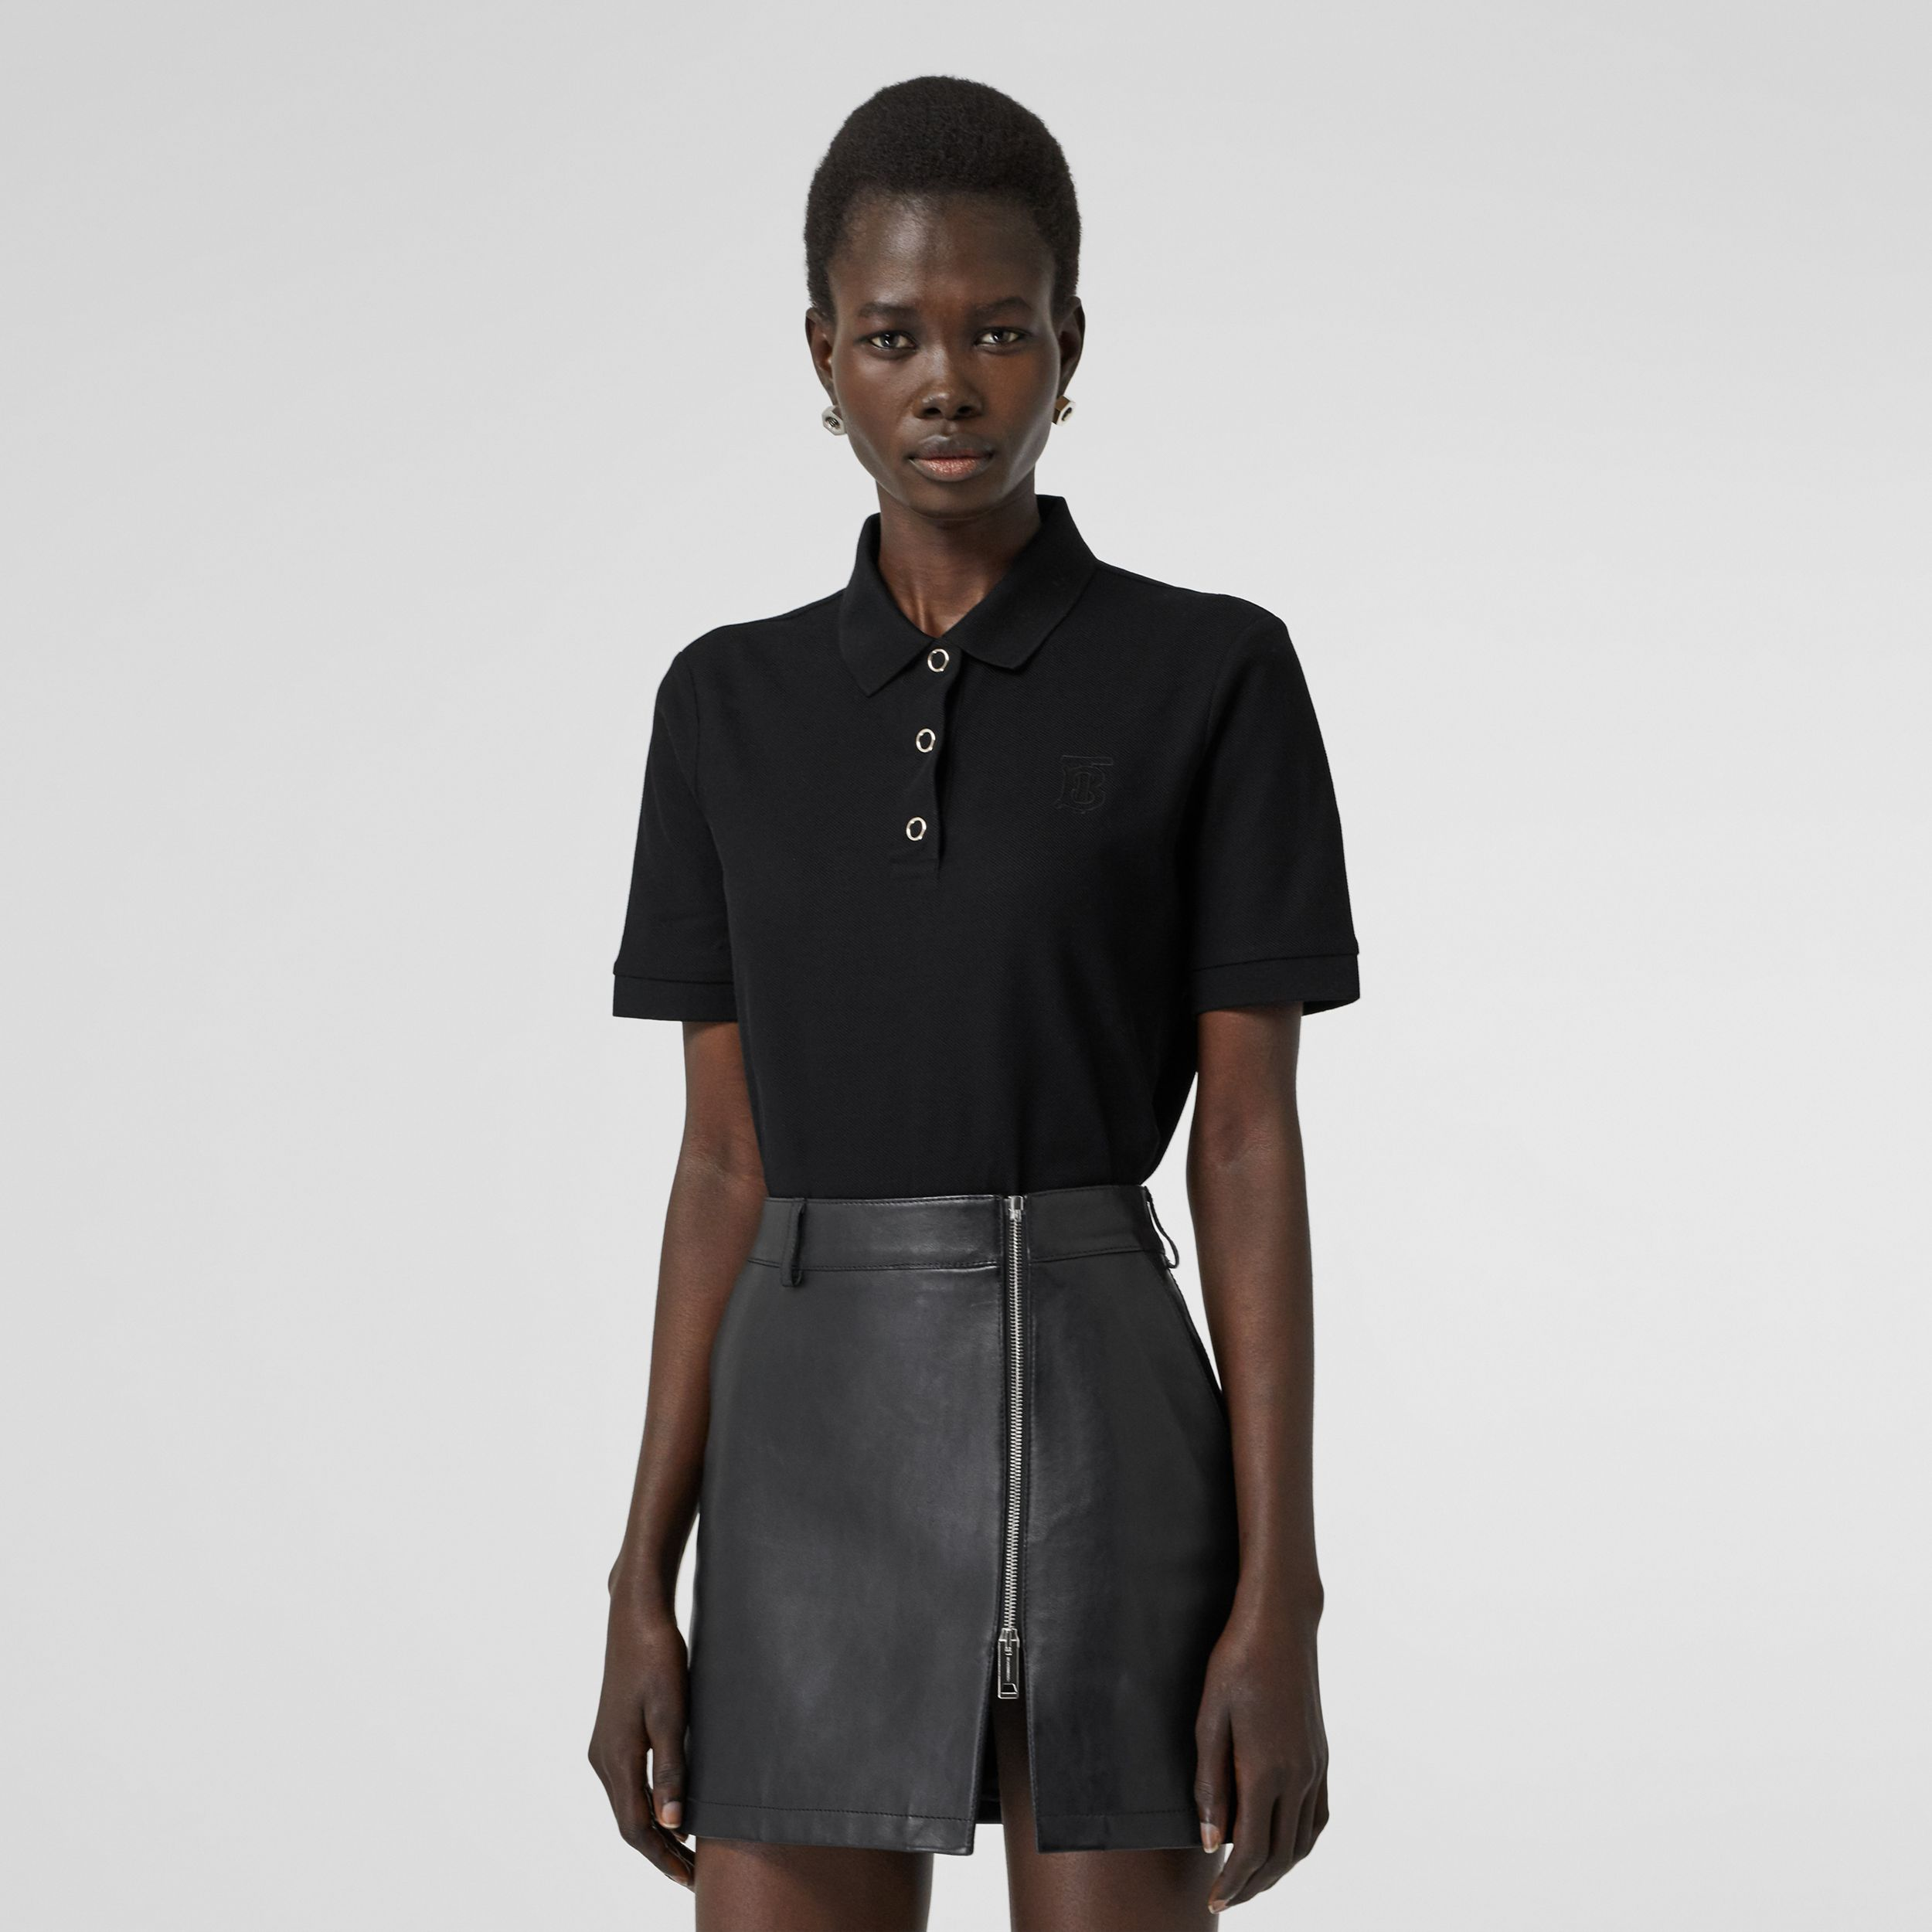 Monogram Motif Cotton Piqué Polo Shirt in Black - Women | Burberry - 1